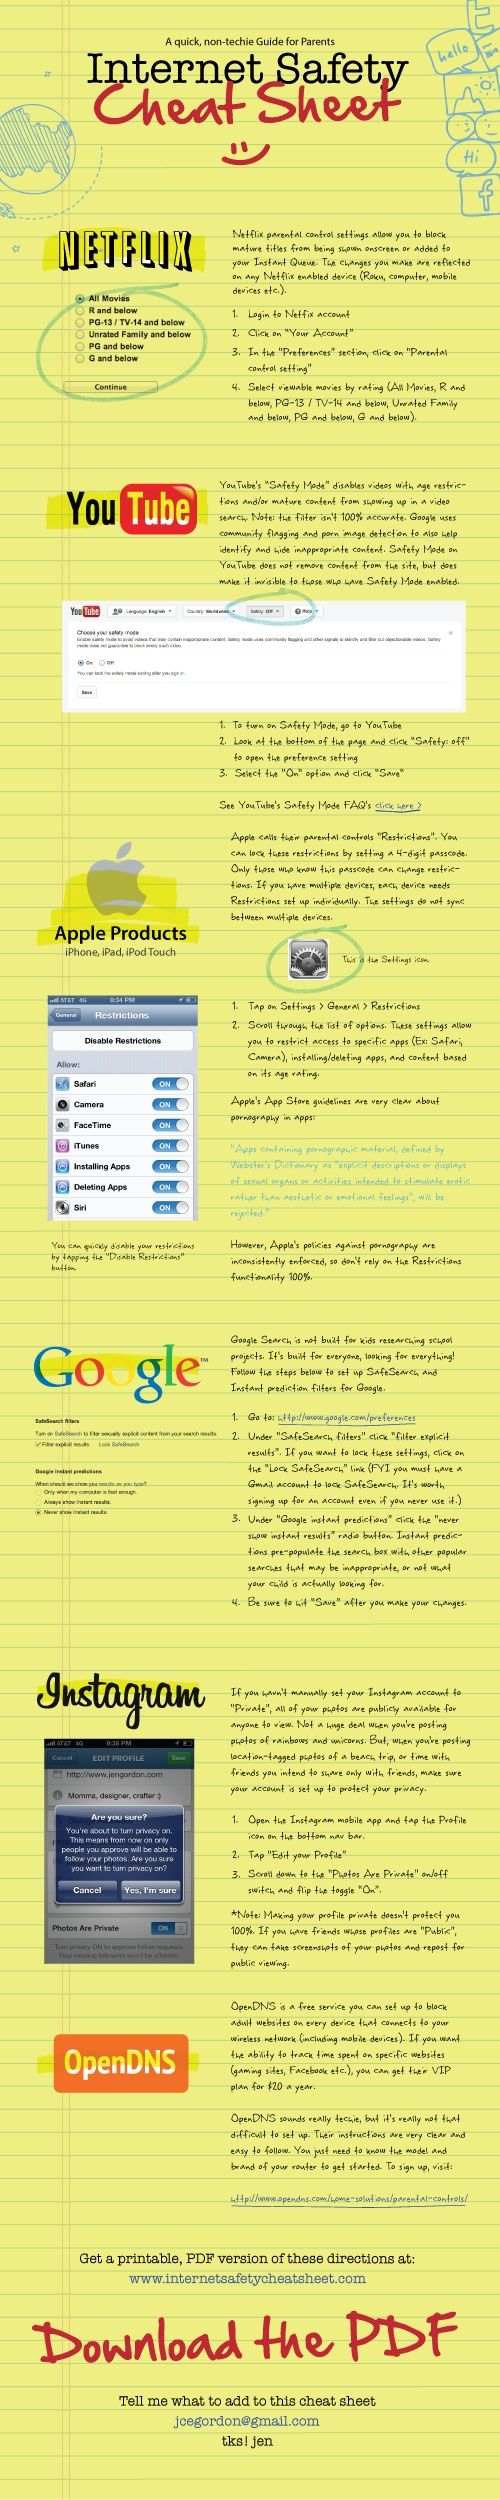 Awesome internet safety cheat sheet Share with parents ASAP